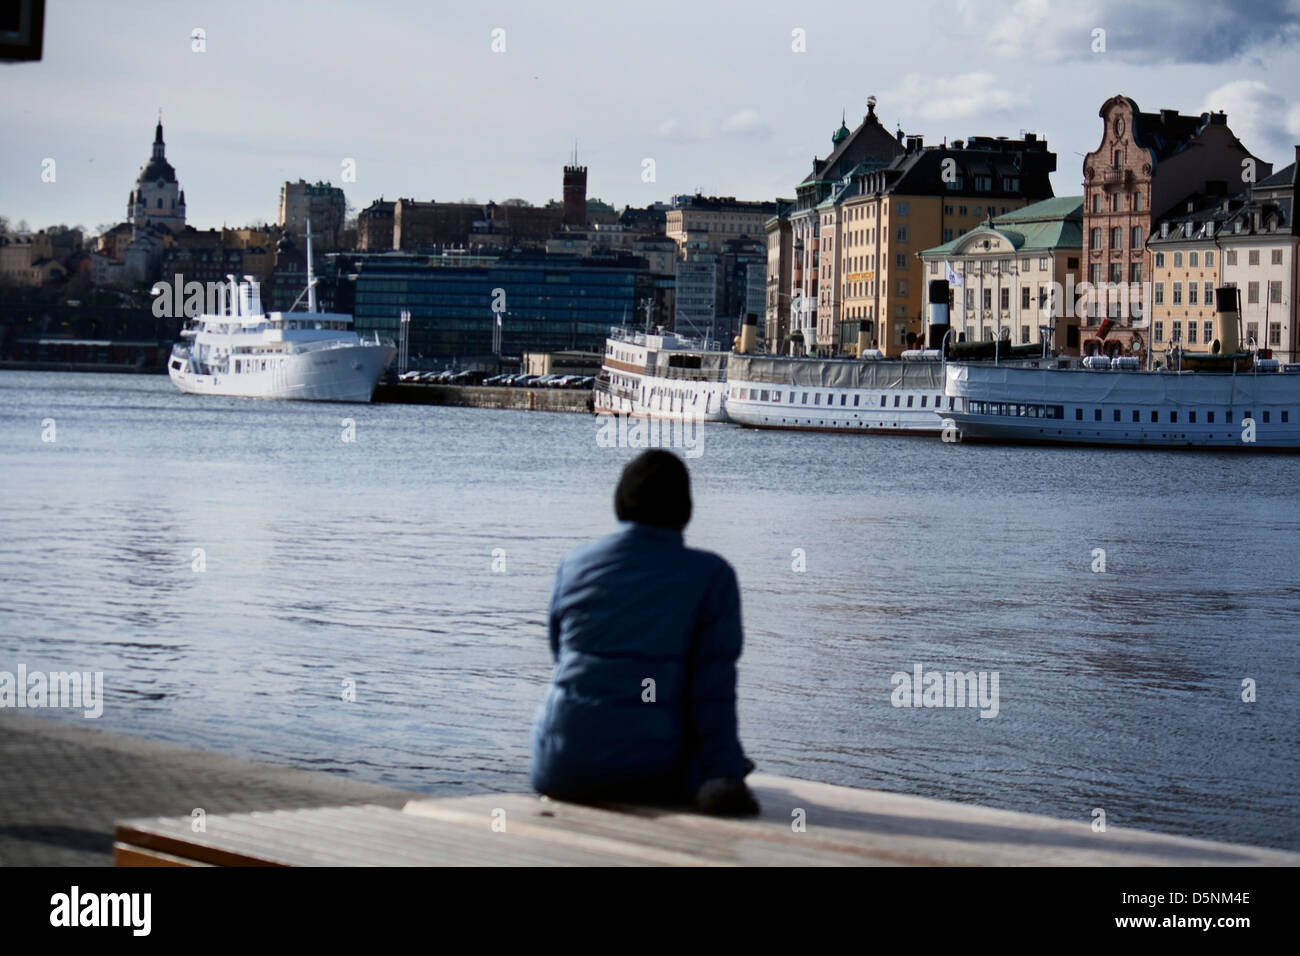 Scandinavia; Sweden; Swedish; Stockholm; Baltic; Sea; Ships; Ship; Harbour; Sitting; Relax; Panorama; Person; Lonely; - Stock Image